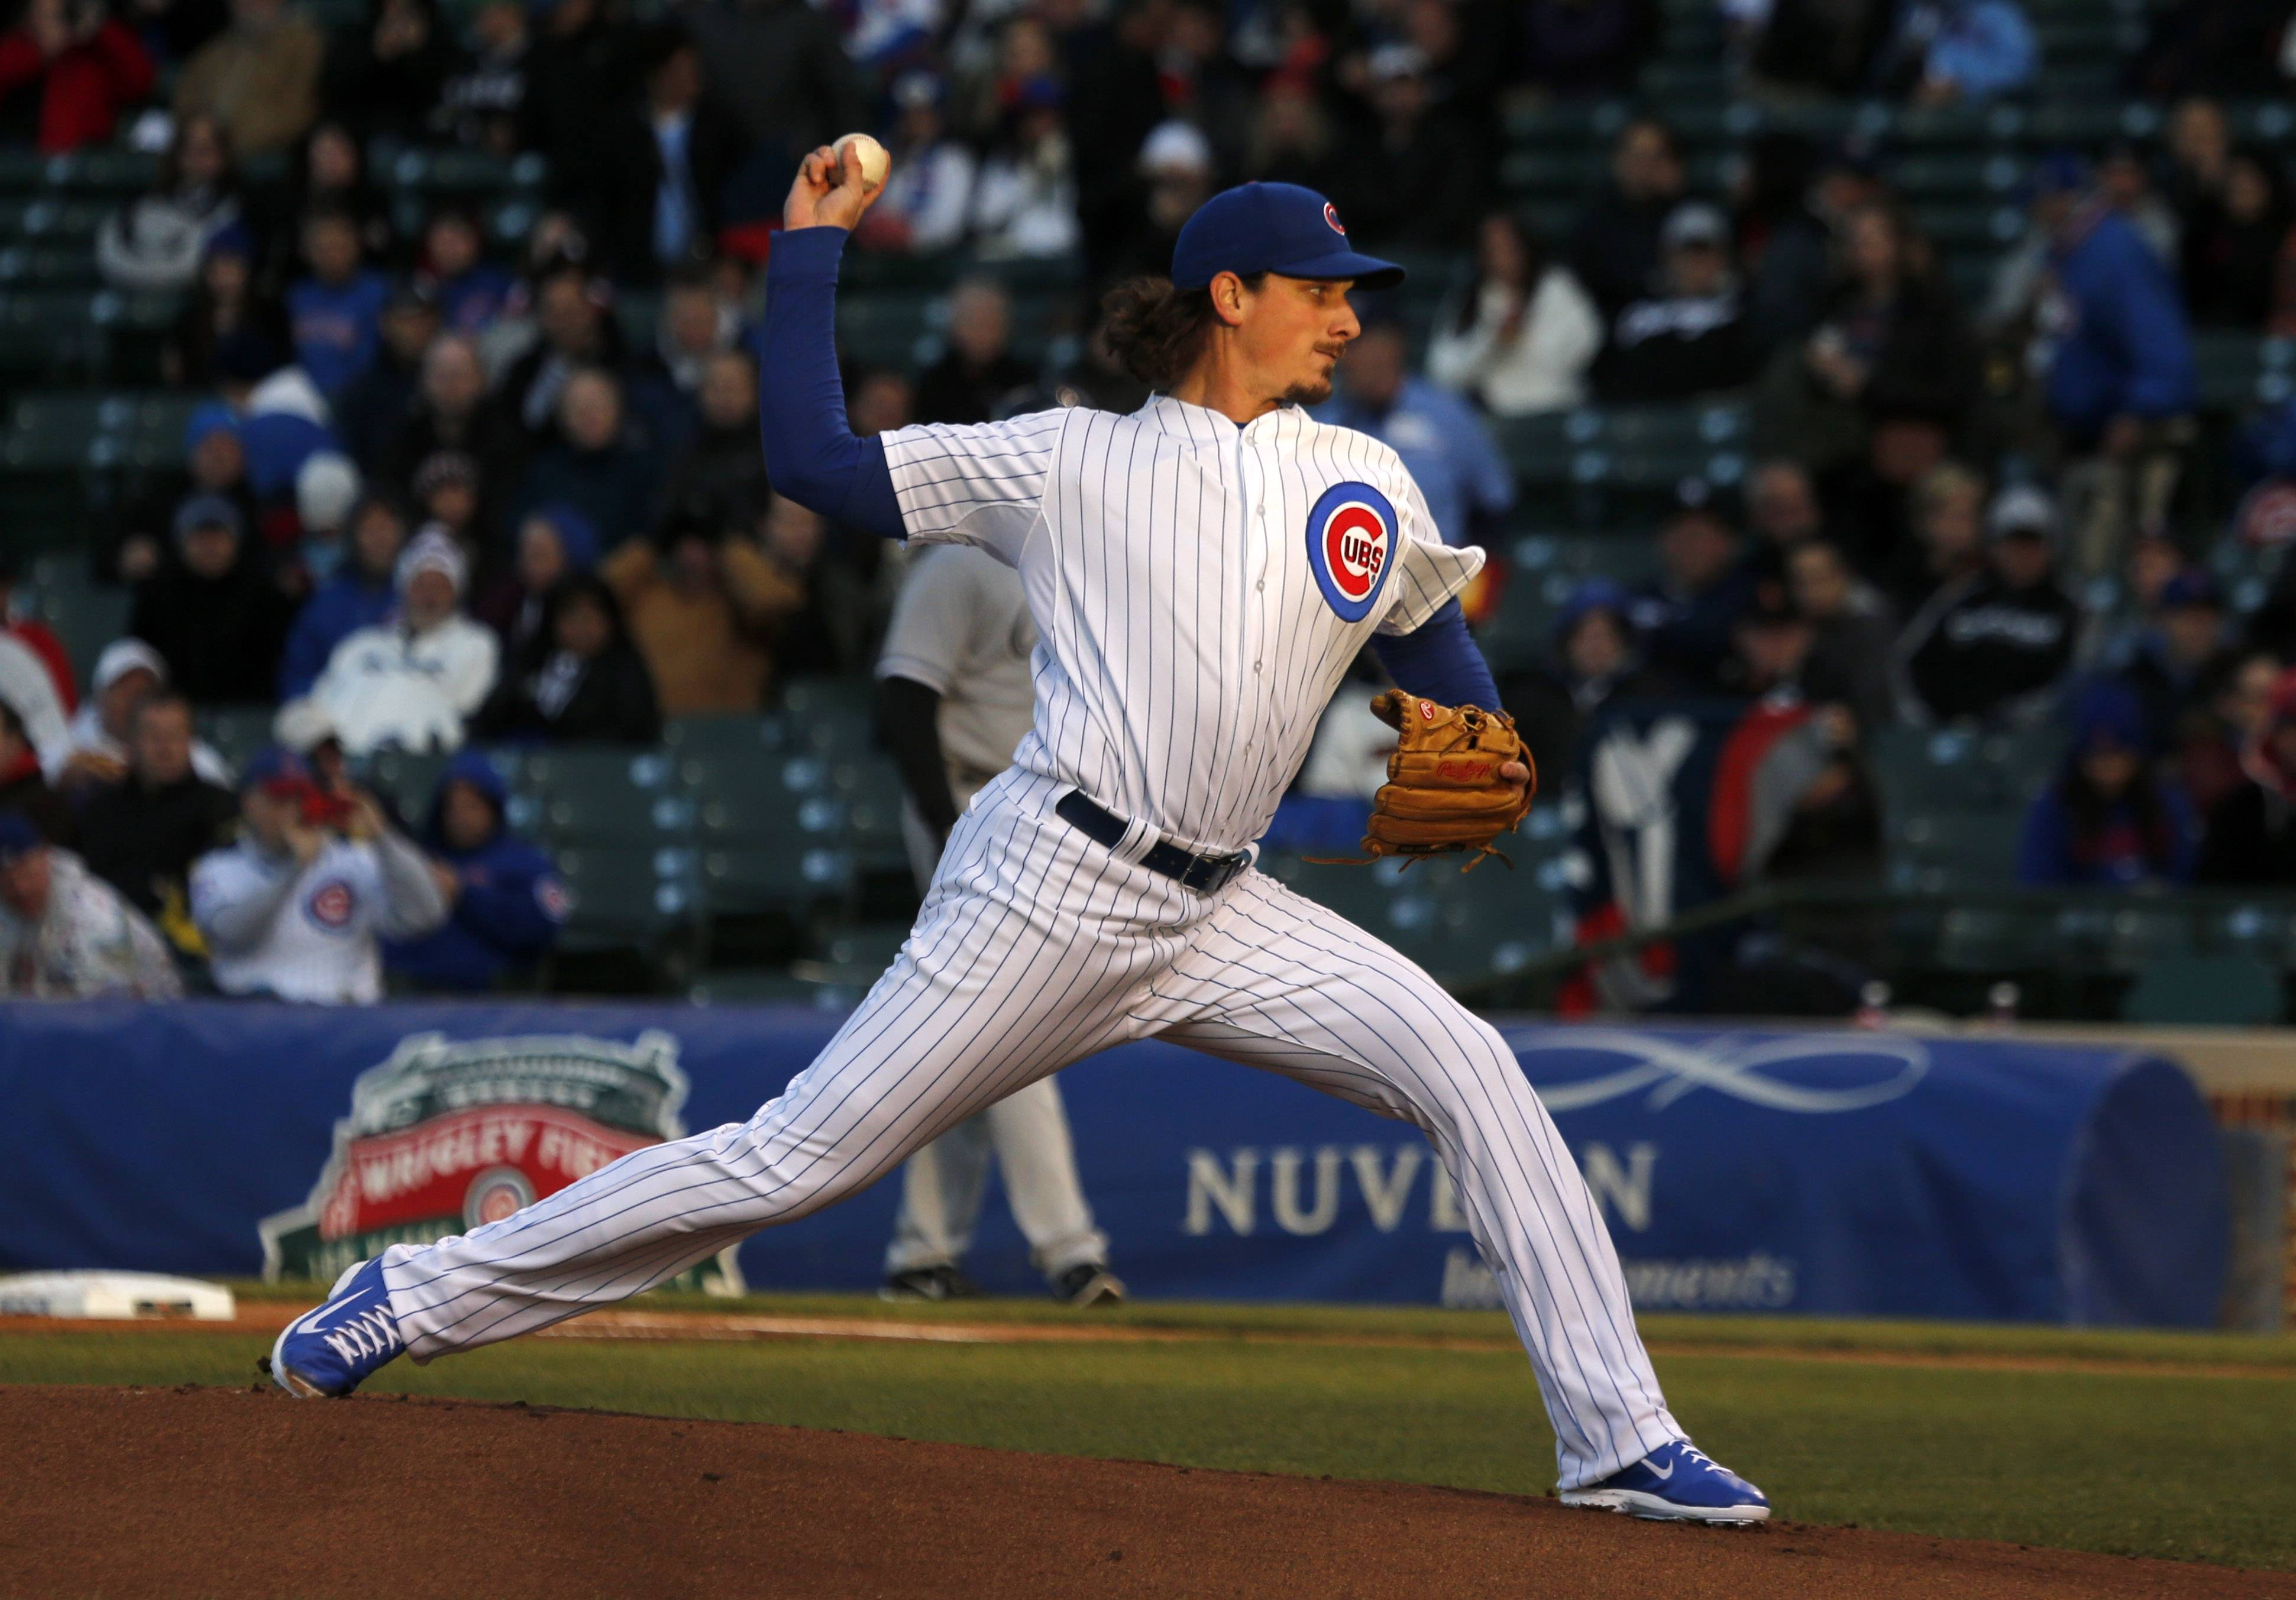 Chicago Cubs starting pitcher Jeff Samardzija delivers in a late setting sun during the first inning of an interleague baseball game against the Chicago White Sox Monday, May 5, 2014, in Chicago. (AP Photo/Charles Rex Arbogast)